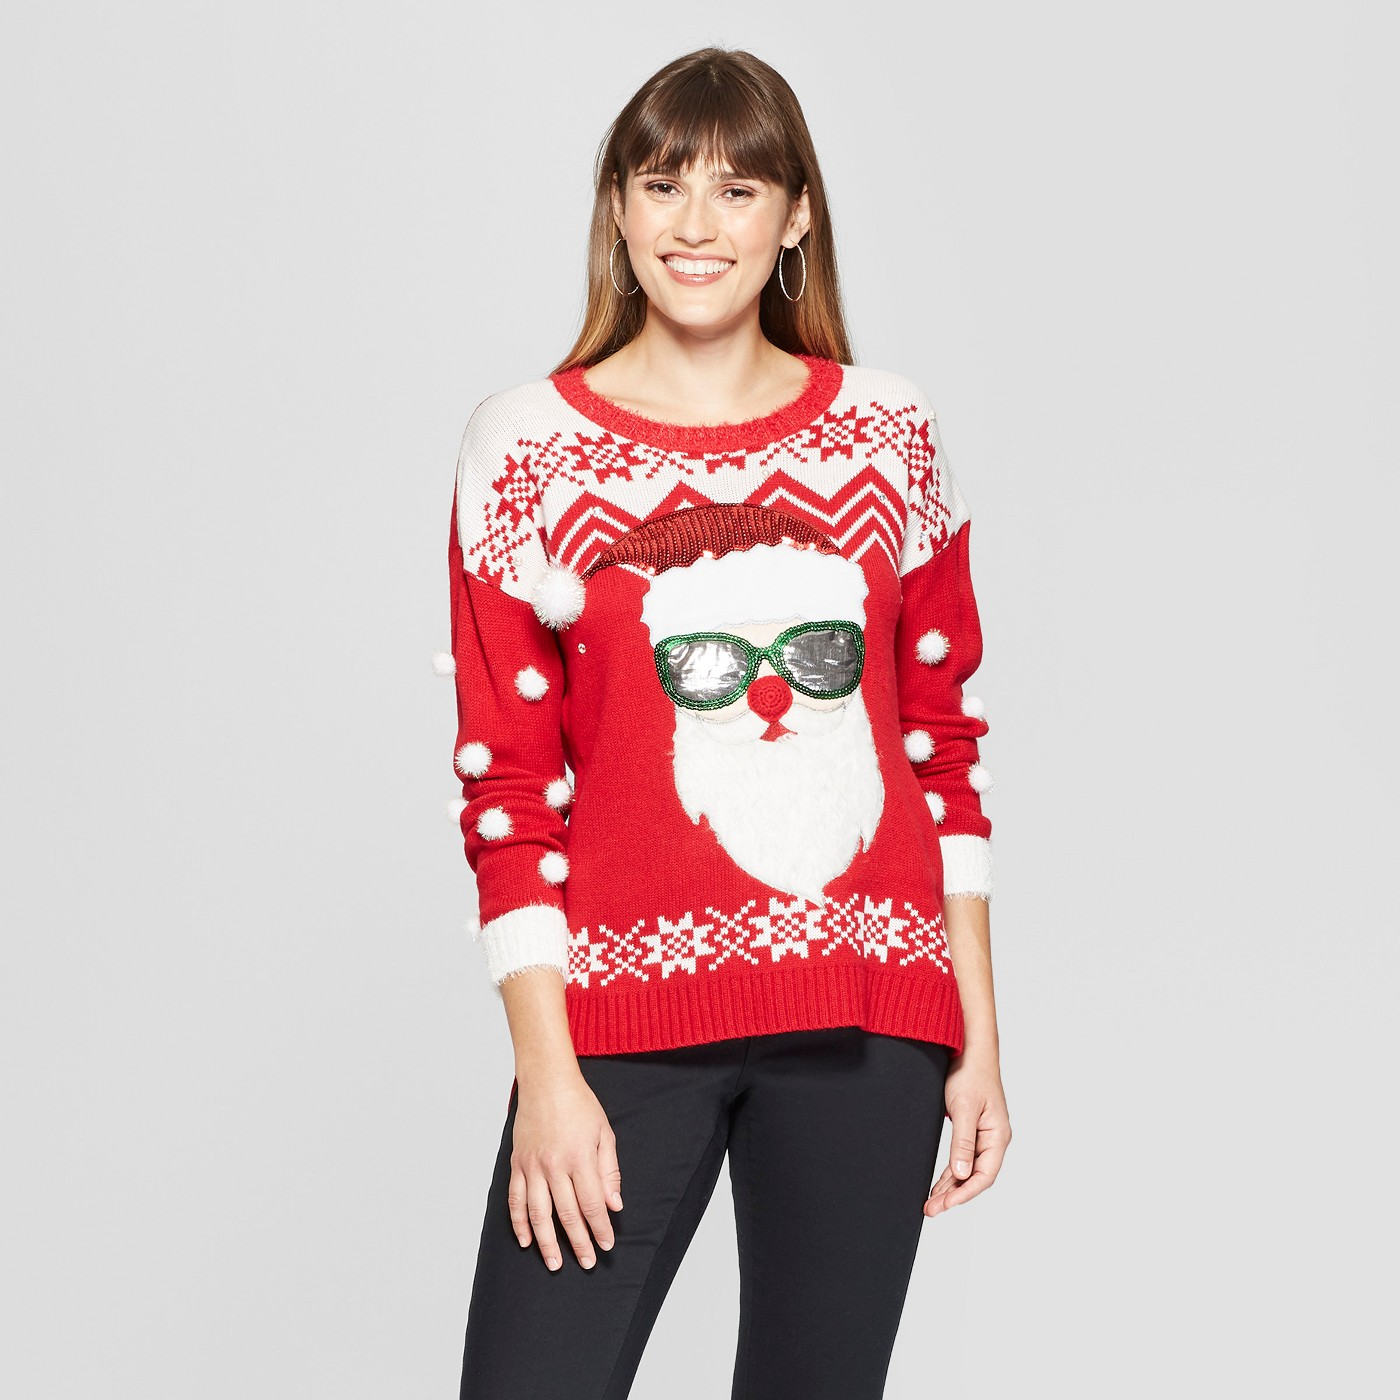 Sunglass santa sweater for women - No puns here but still a chic looking sweater. ($39.99)